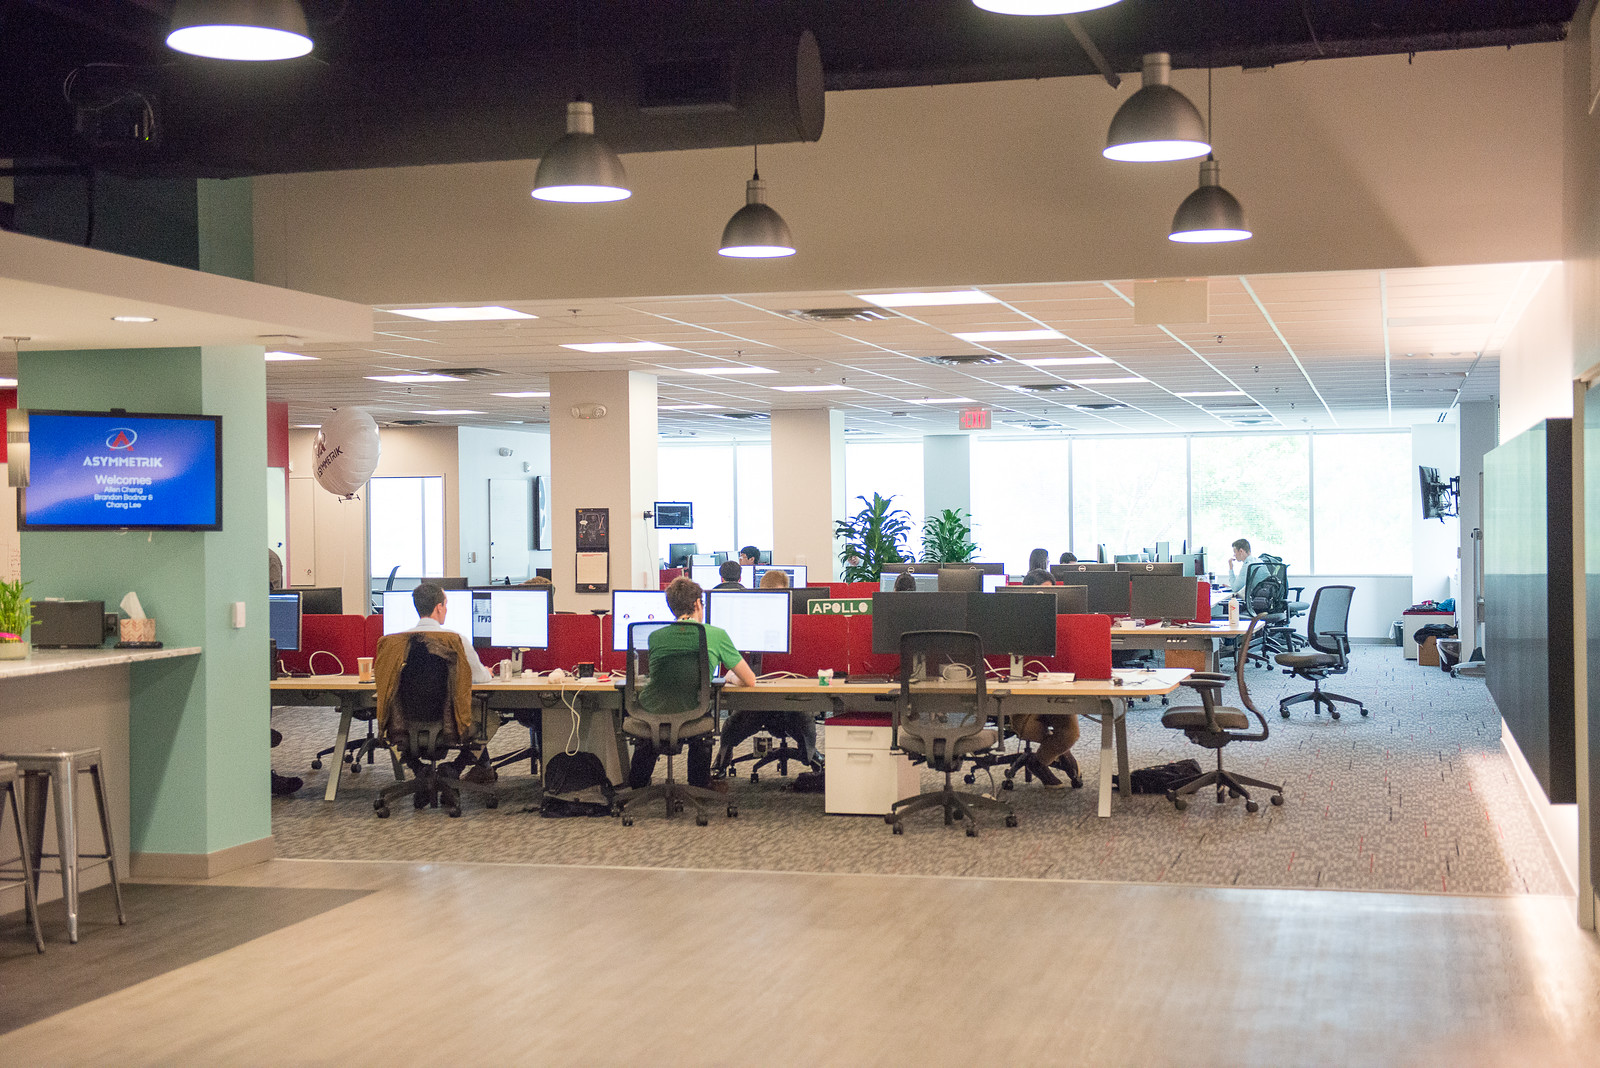 Technical.ly visits the Asymmetrik office to find out how we've kept our culture as we've grown